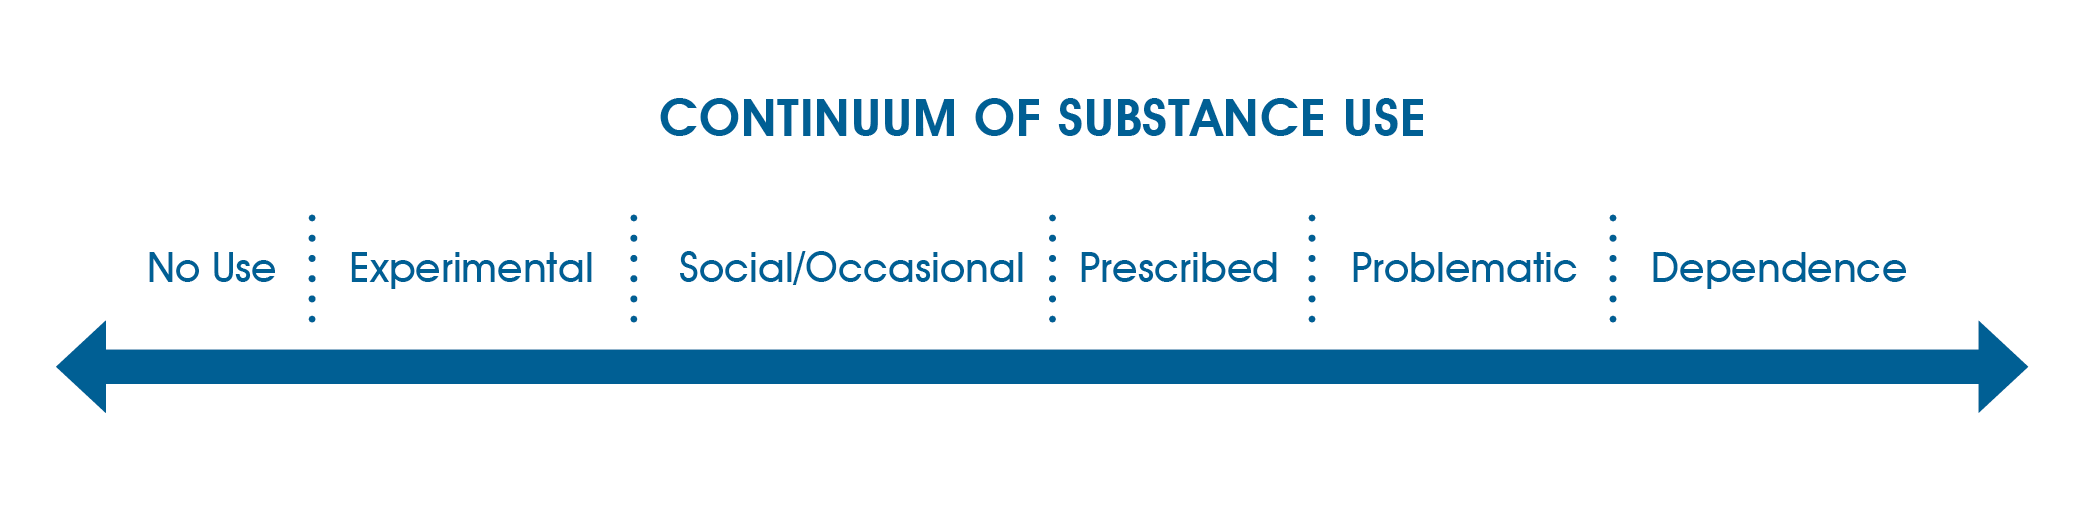 This image shows the continuum of substance use. It ranges from no substance use on the far left to full dependence on the far right, with various stages in between.